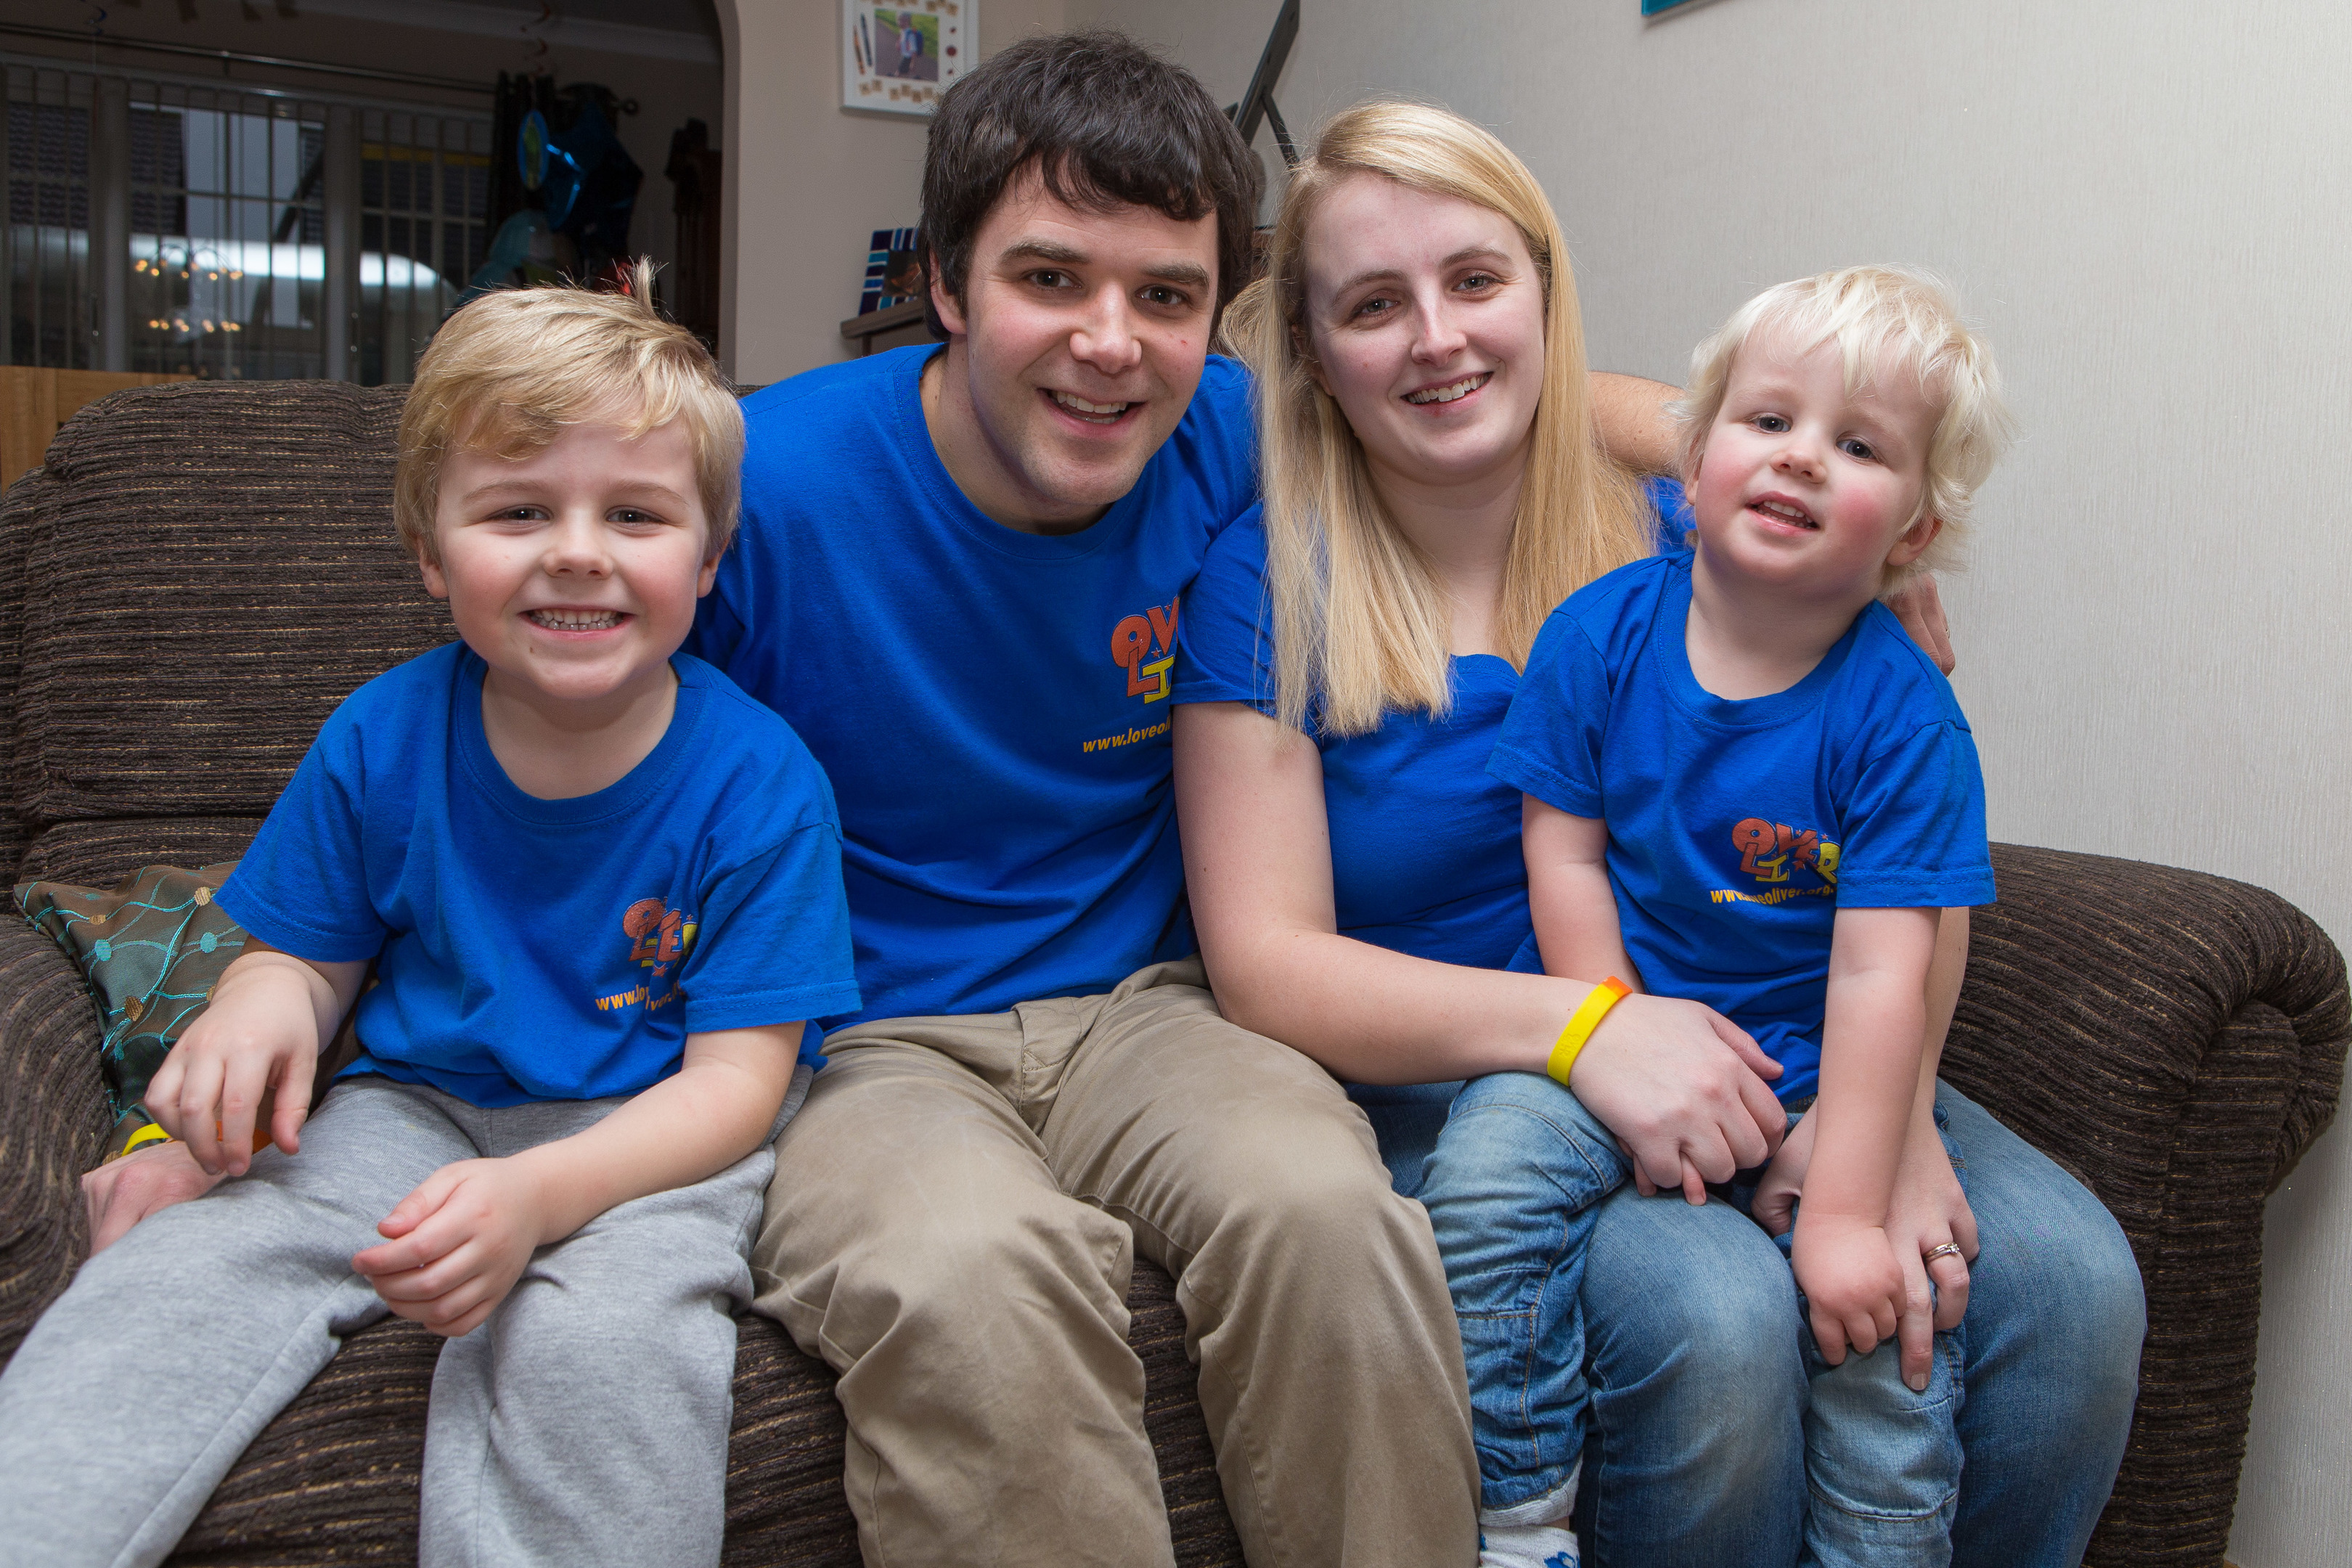 Andy and Jennifer Gill with children Micah and Rory.